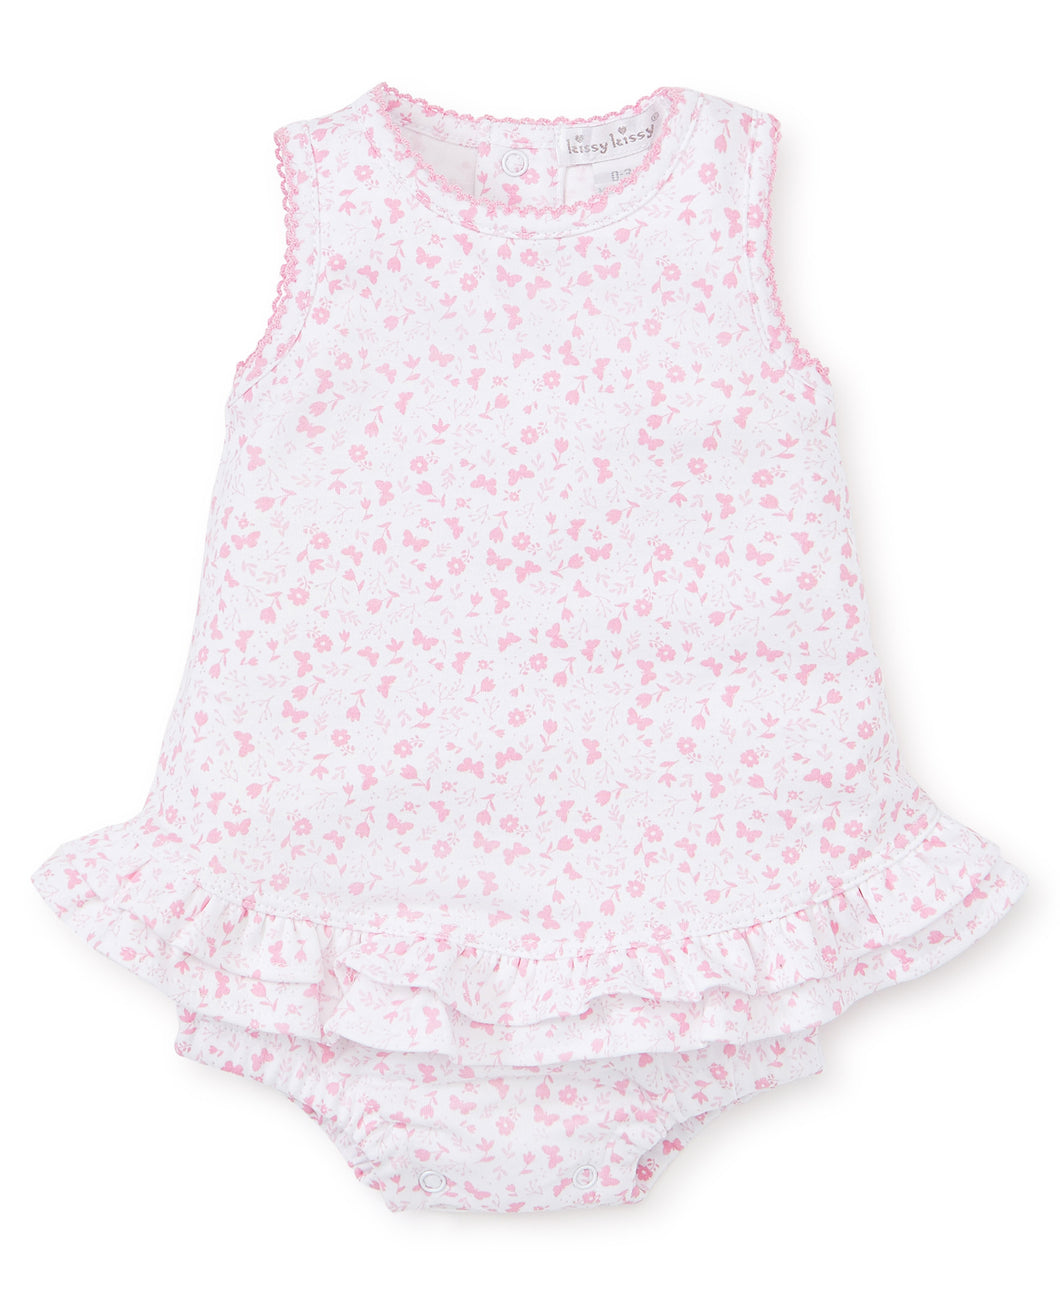 Mini Blooms Bubble Mix - Pink